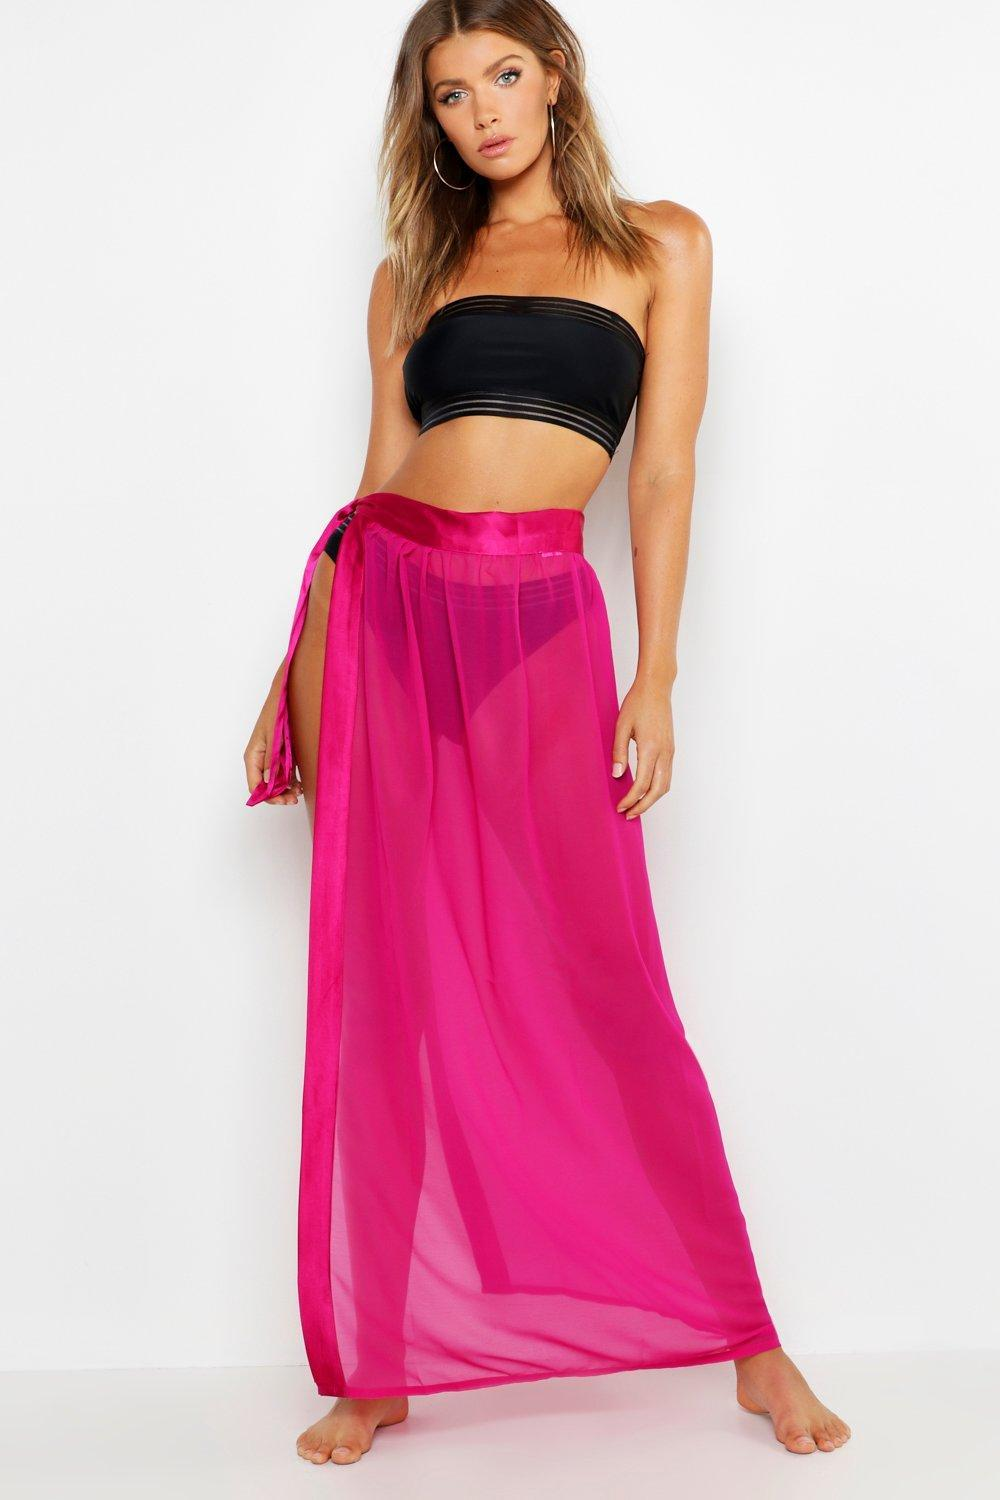 e0b95f6ee405b Boohoo Lilly Satin Tie Beach Sarong in Pink - Lyst